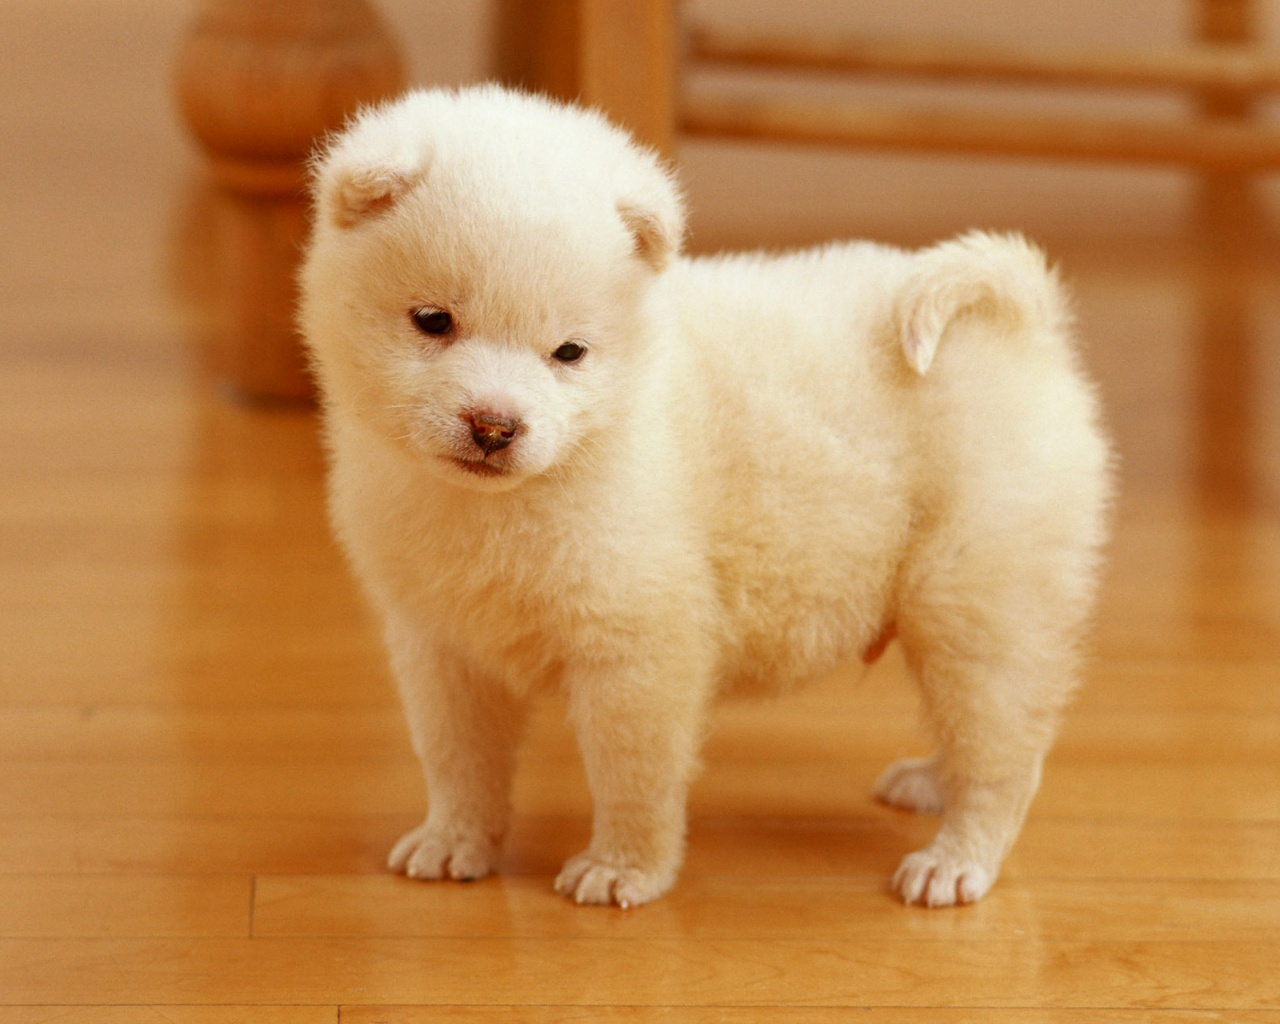 rare pictures here is the latest collection of cute puppies wallpapers 1280x1024